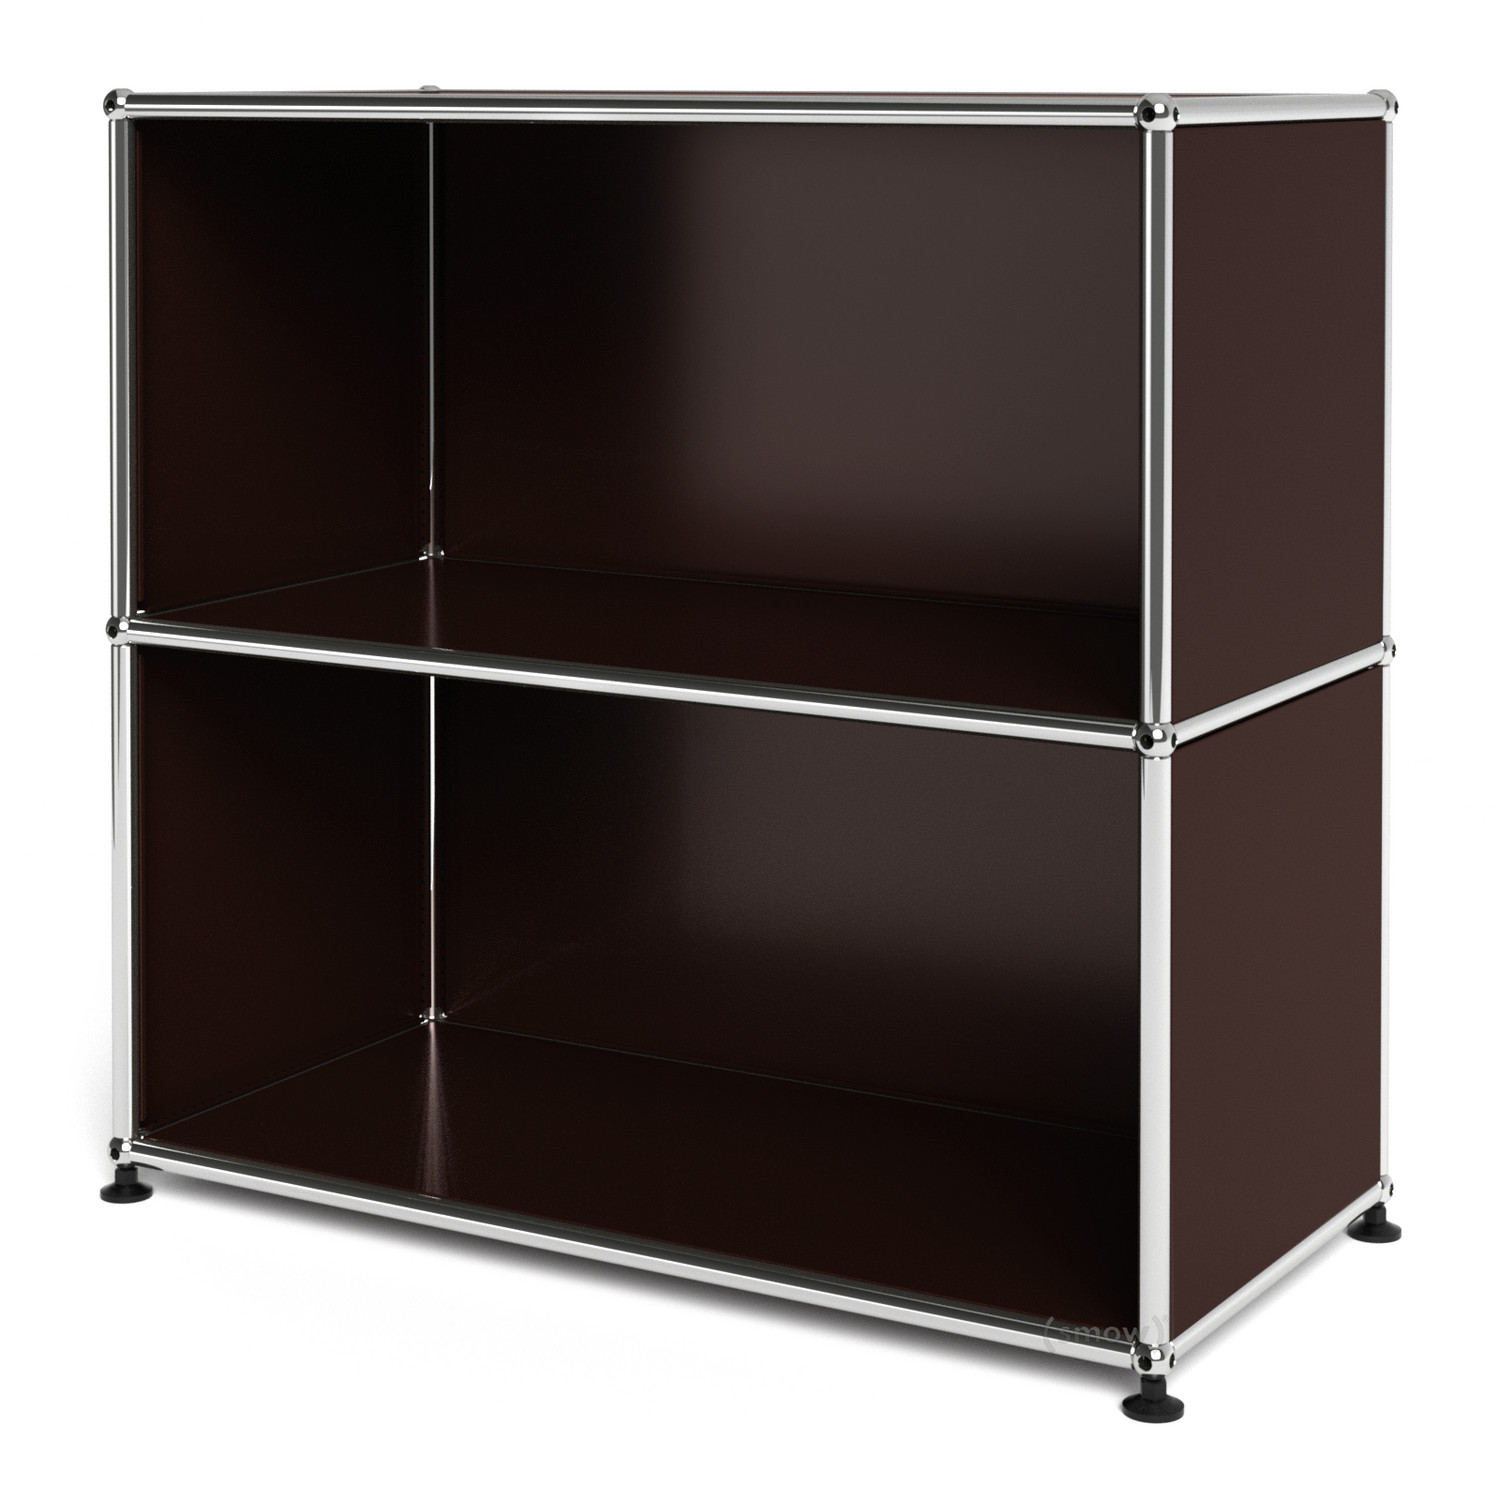 usm haller sideboard m open usm brown by fritz haller. Black Bedroom Furniture Sets. Home Design Ideas